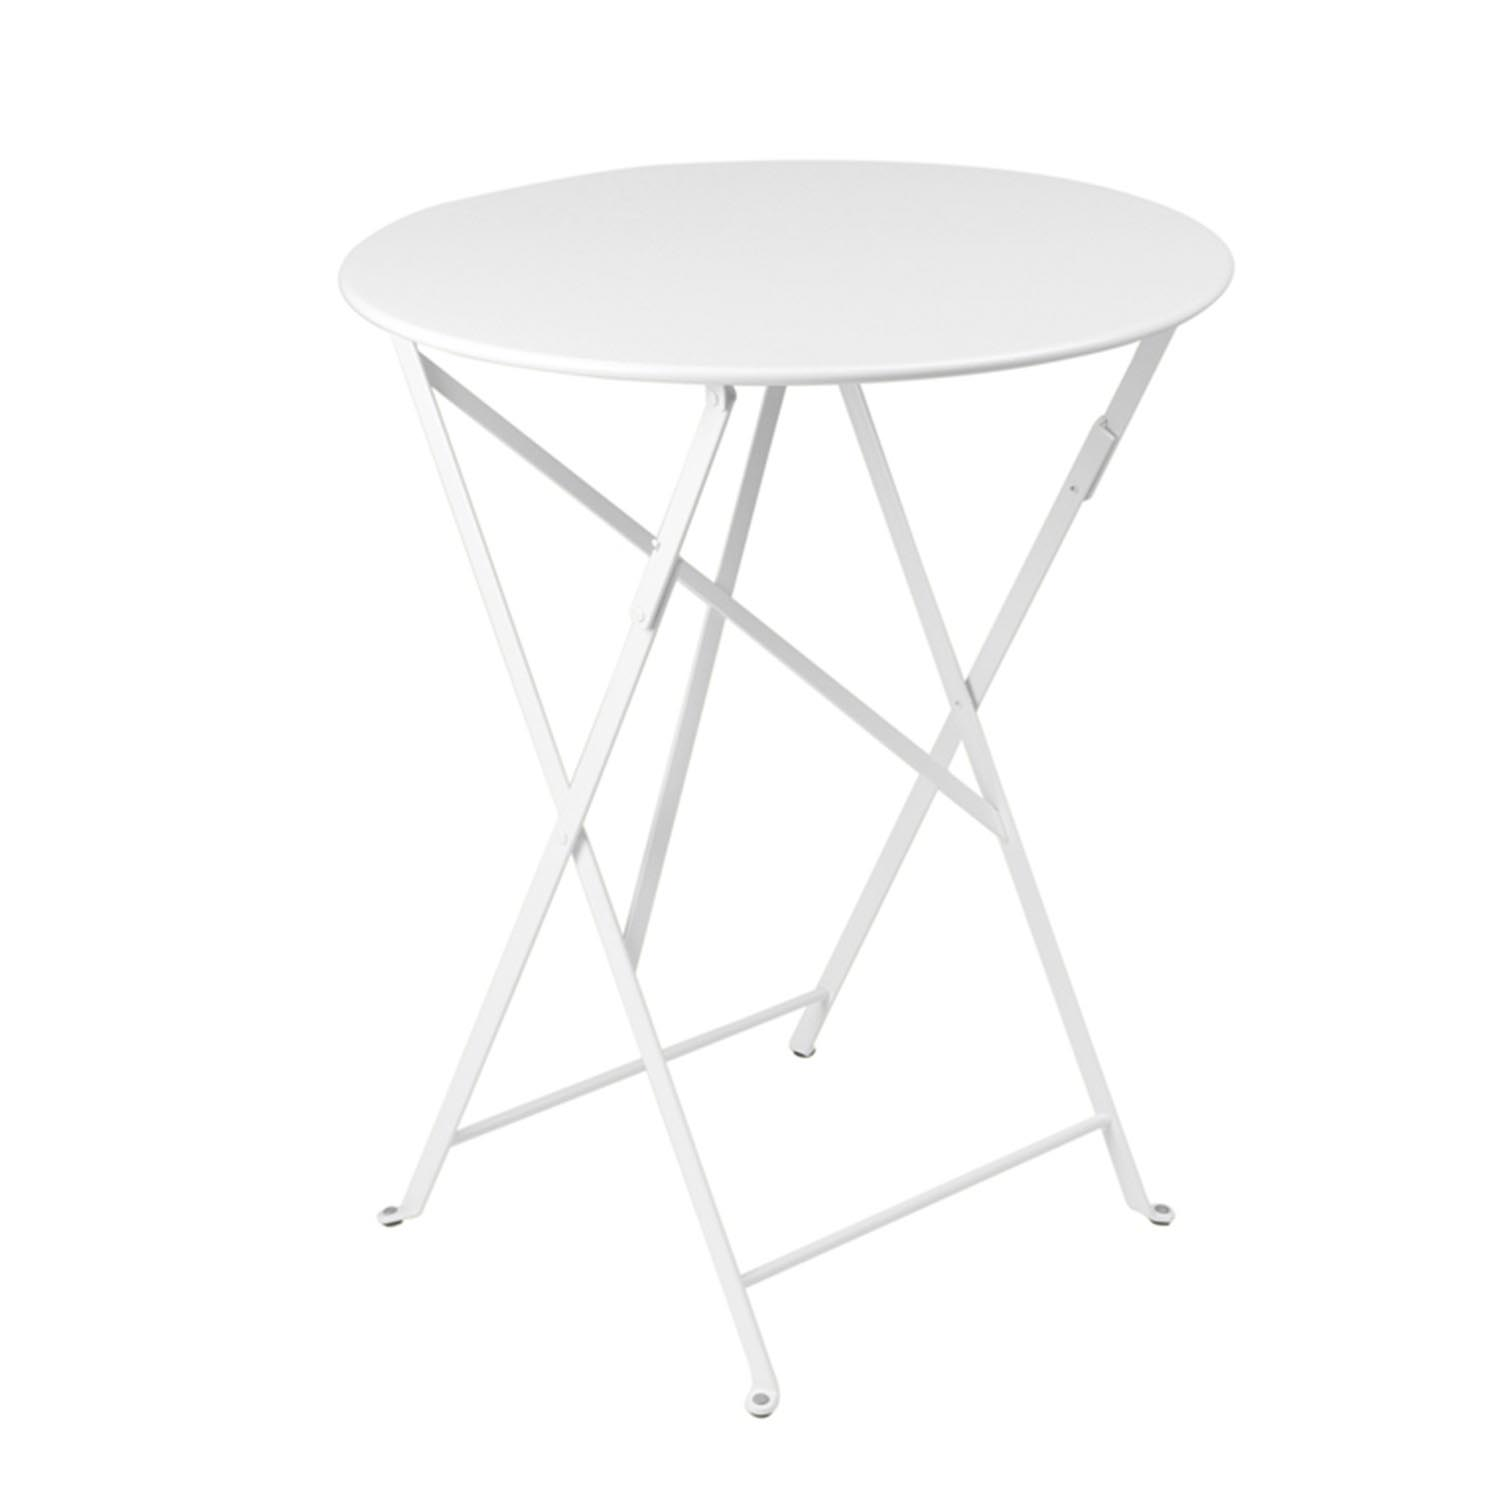 Fermob 24 Inch Folding Table Pictured In Cotton